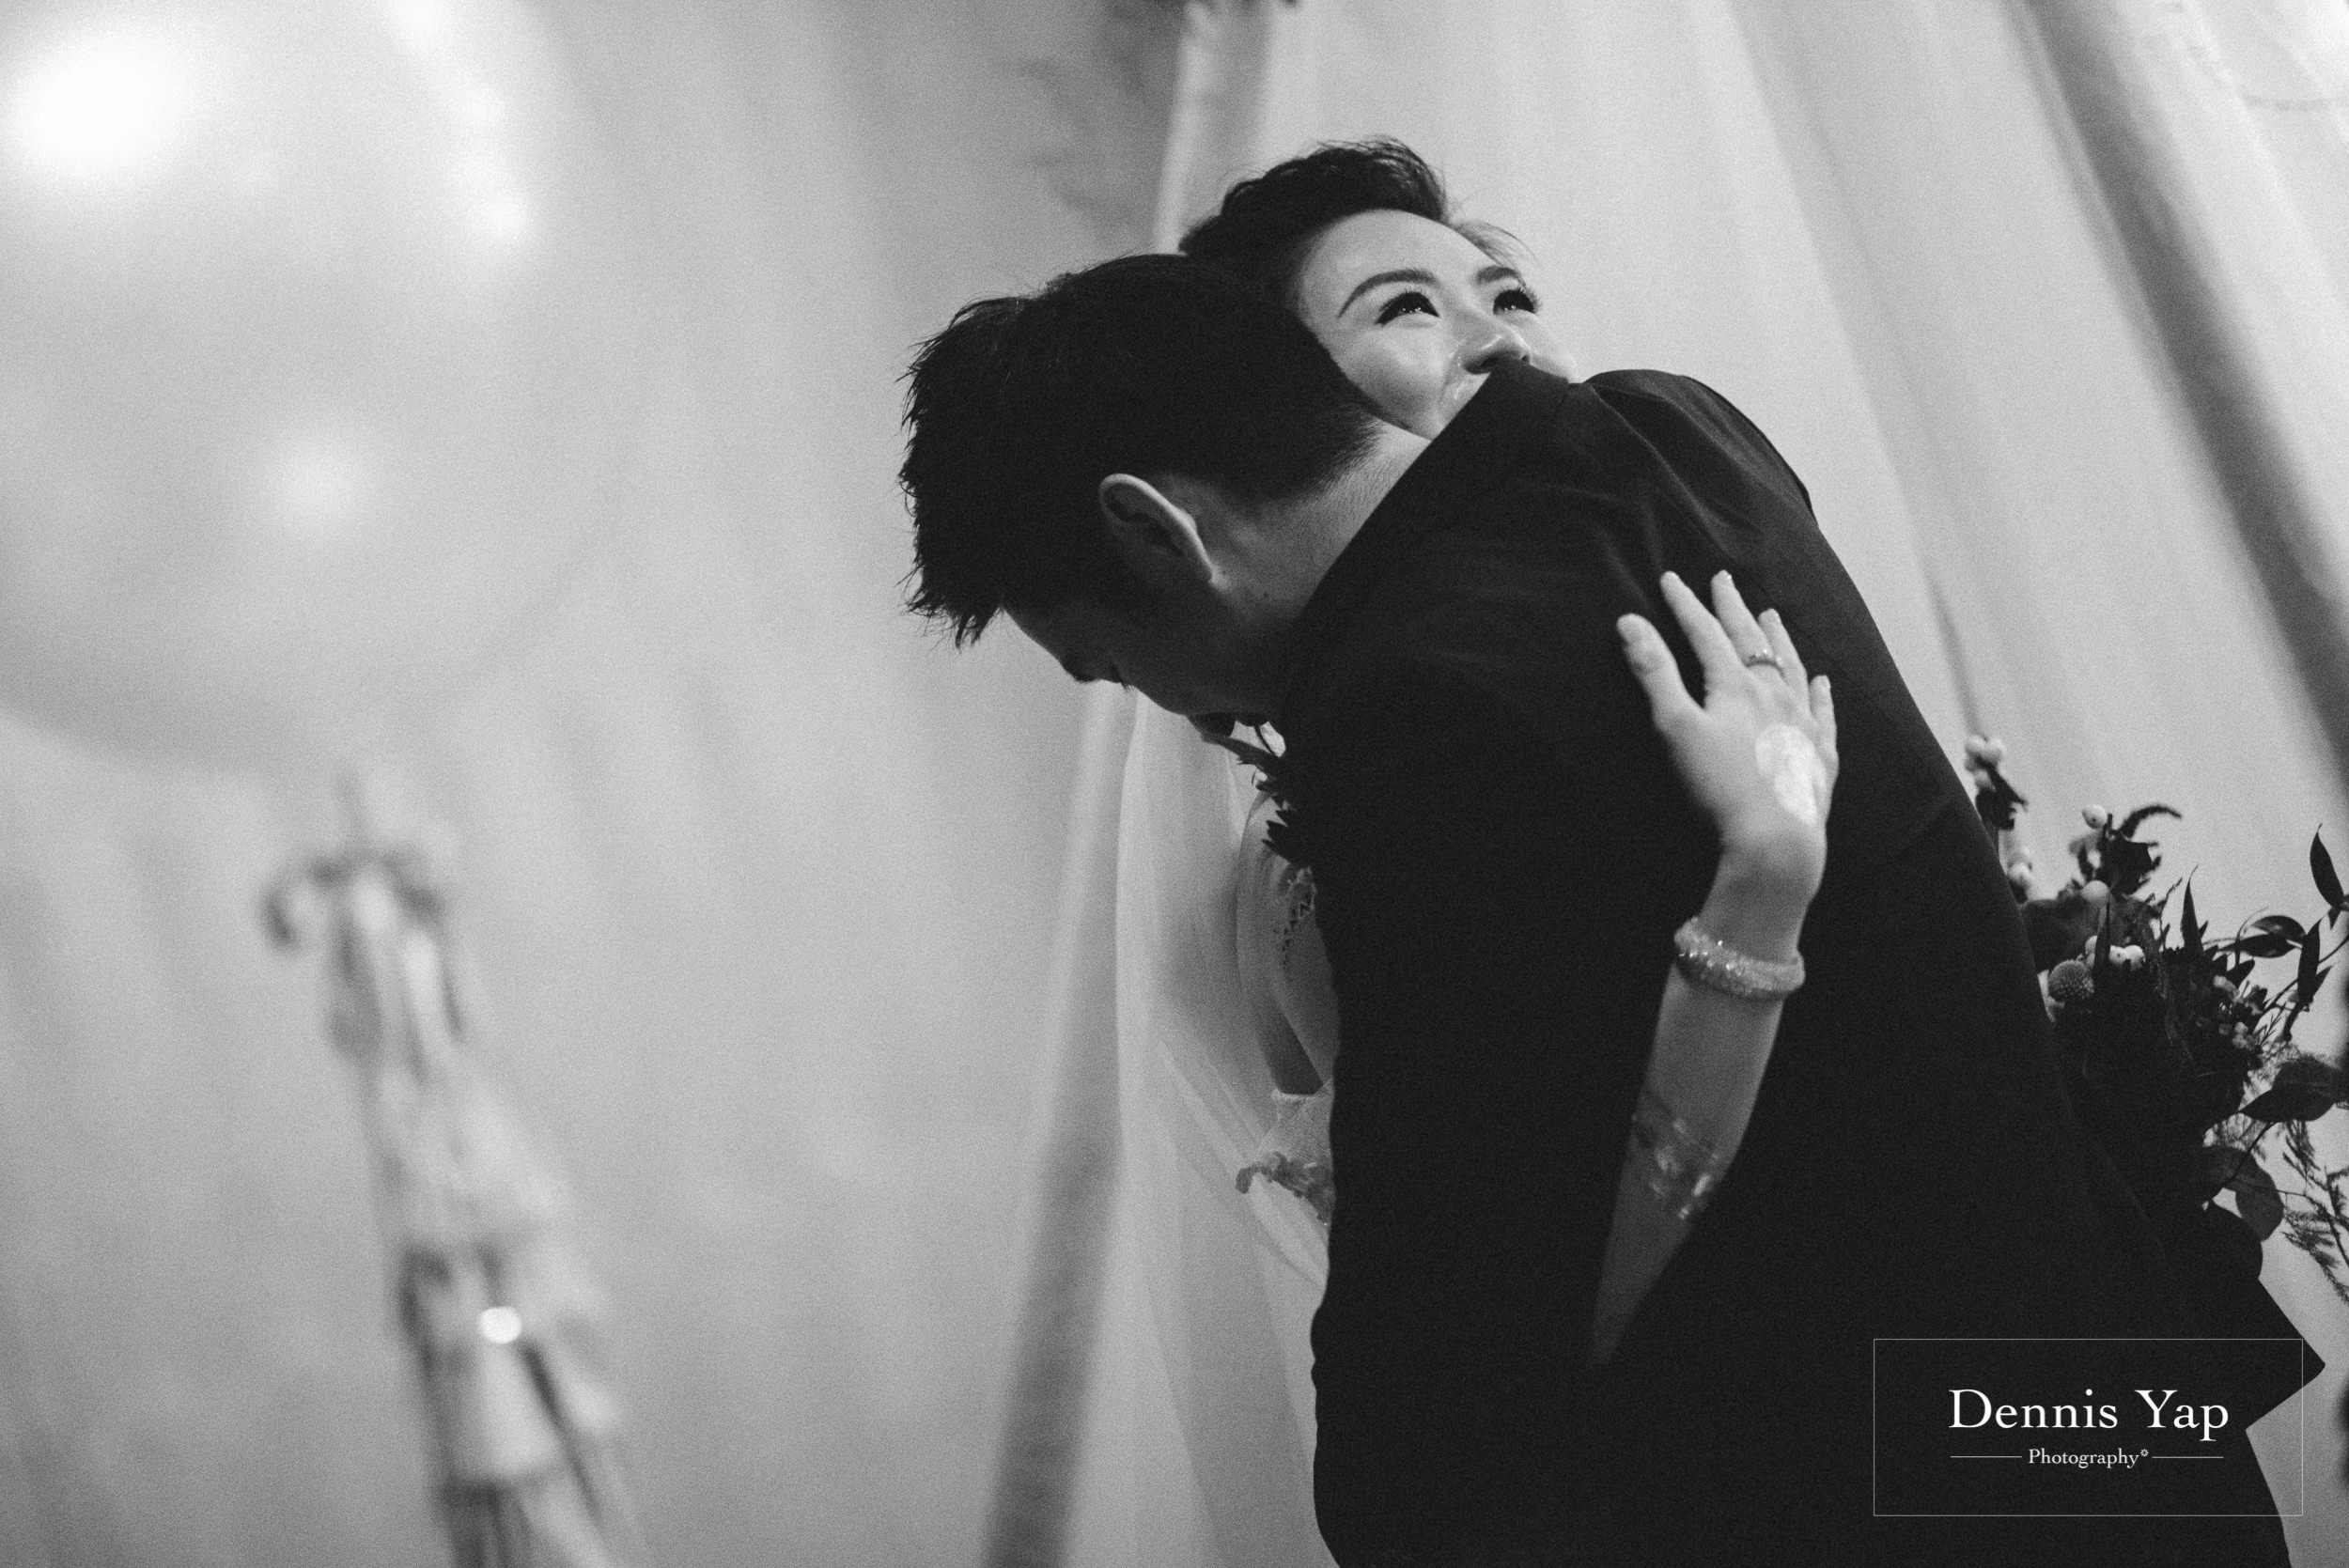 ser siang sze liang rom registration of marriage KL journal hotel dennis yap photography-21.jpg